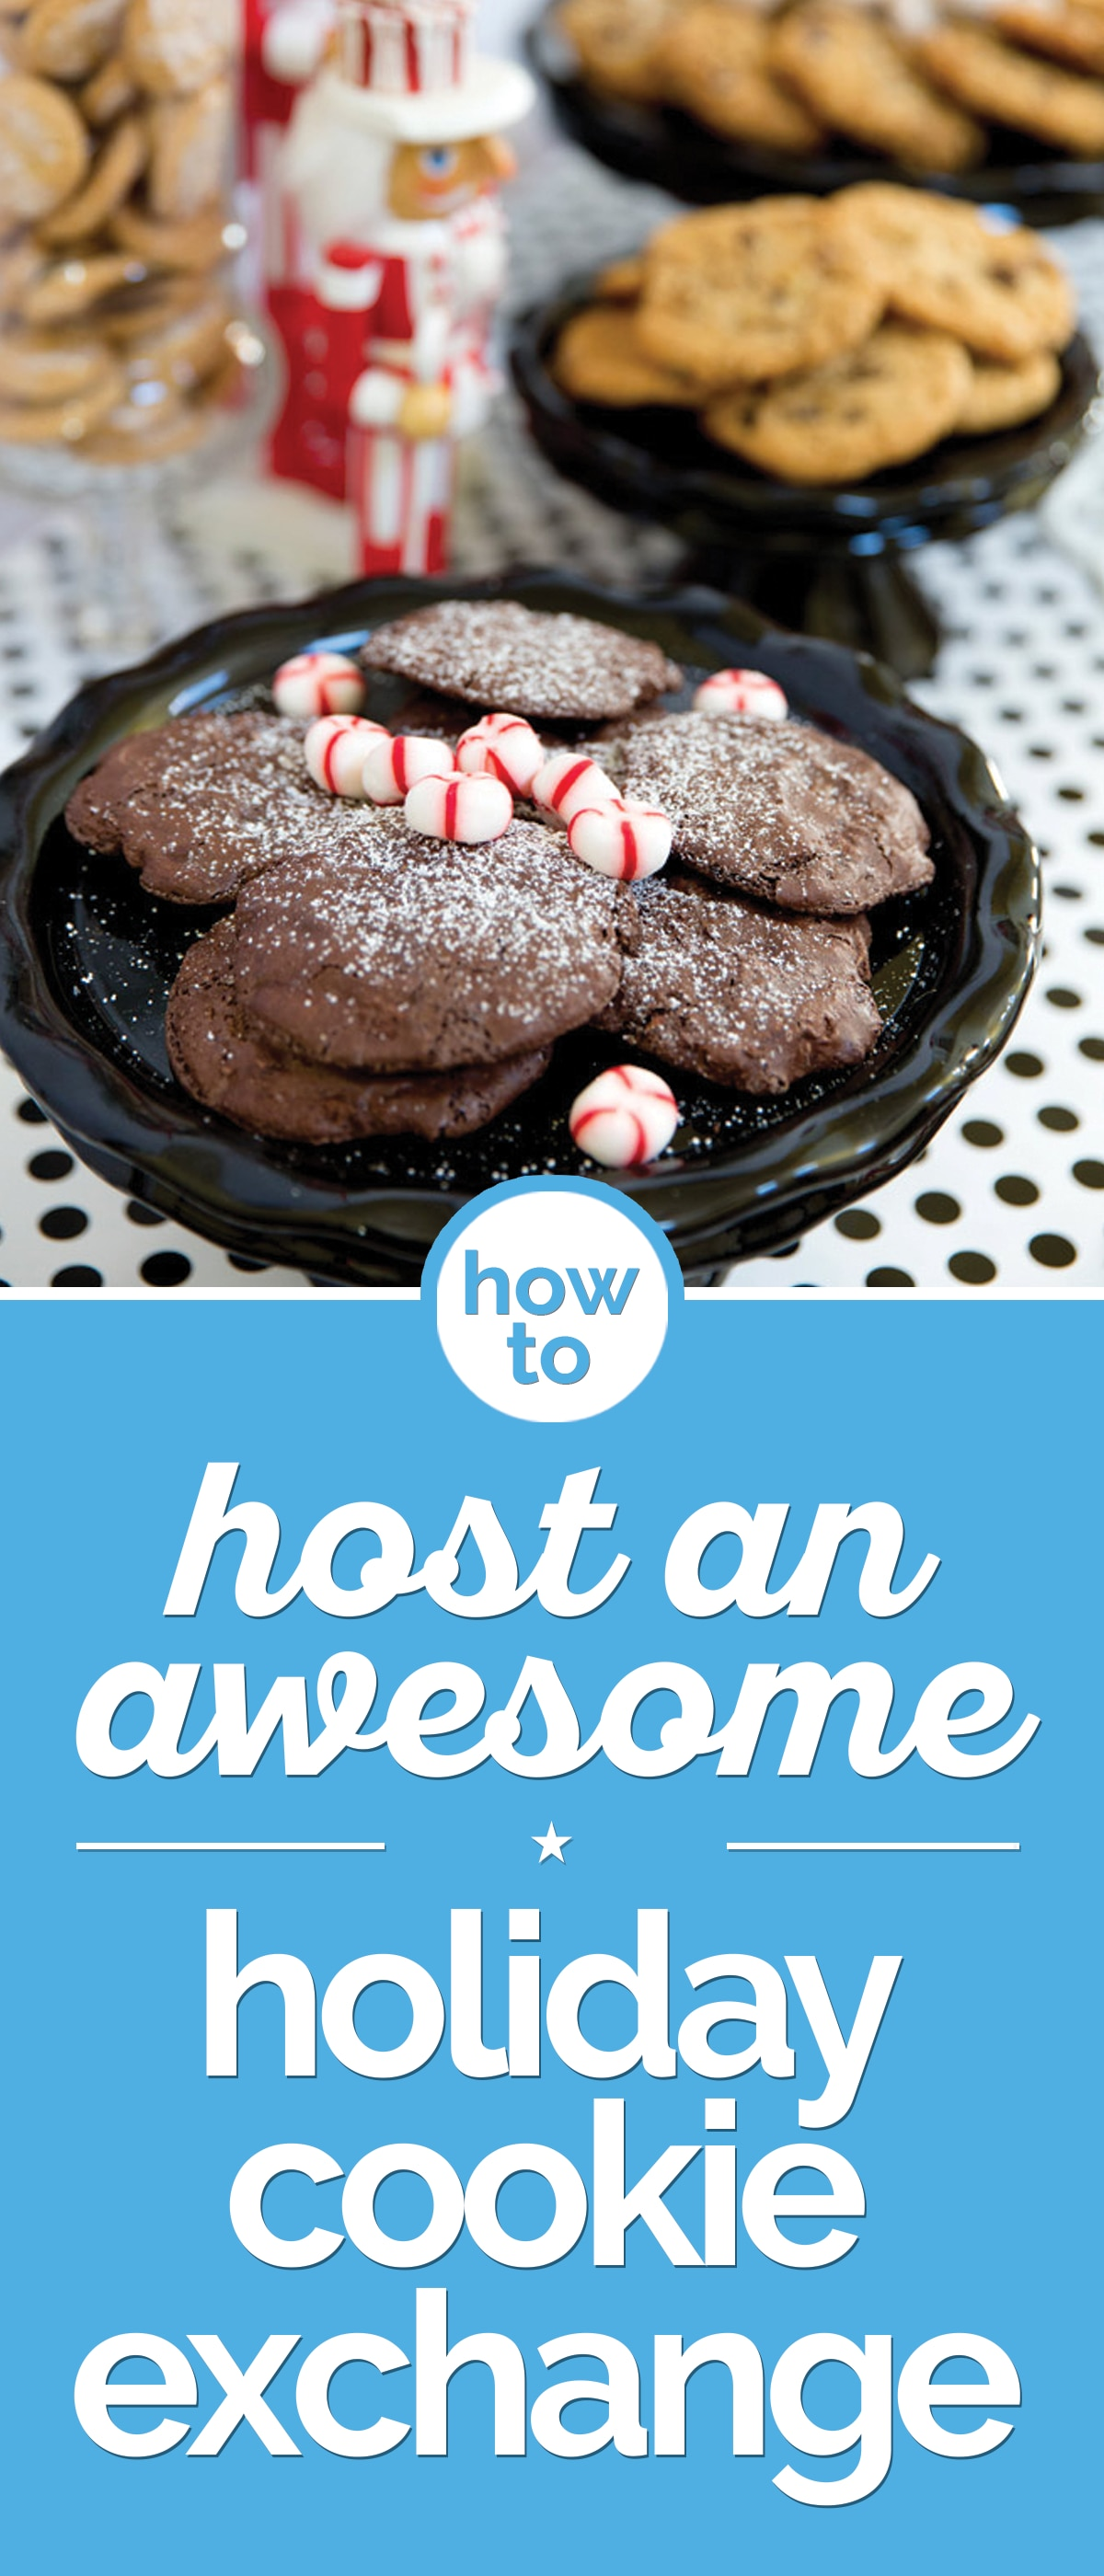 How to Host an Awesome Holiday Cookie Exchange | thegoodstuff